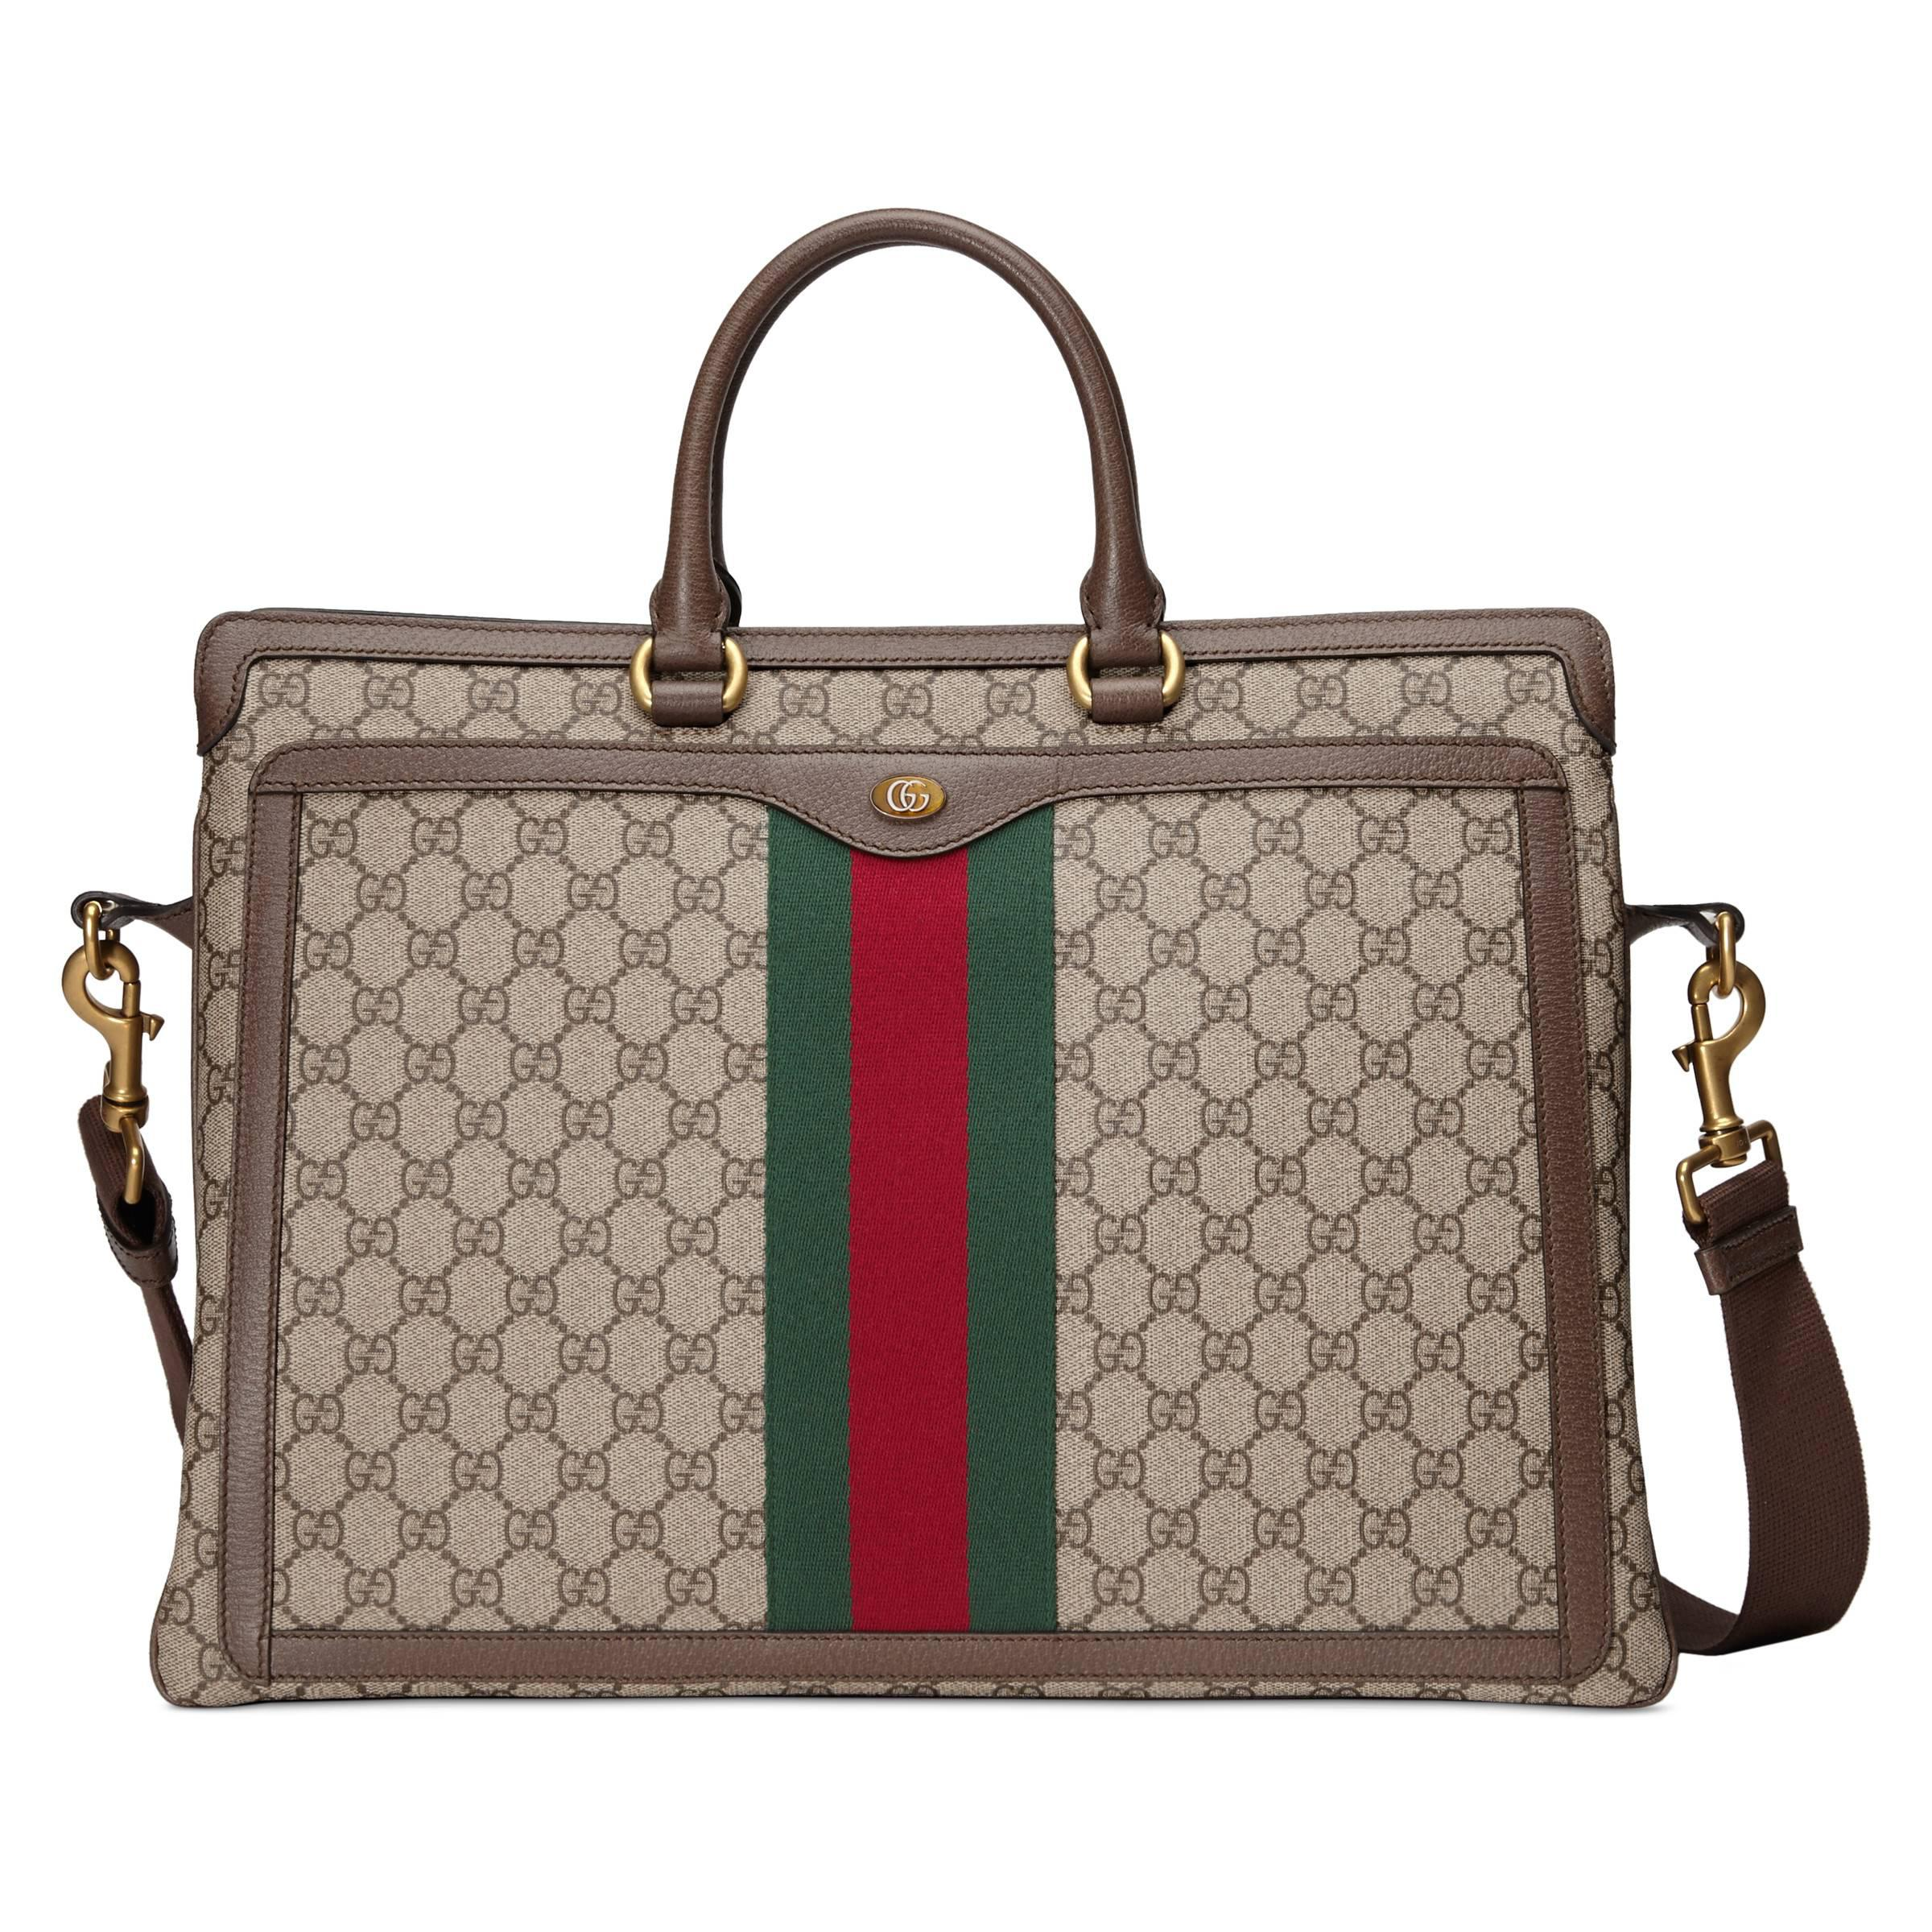 b4d9b78d2 Gucci Ophidia GG Briefcase in Natural for Men - Lyst